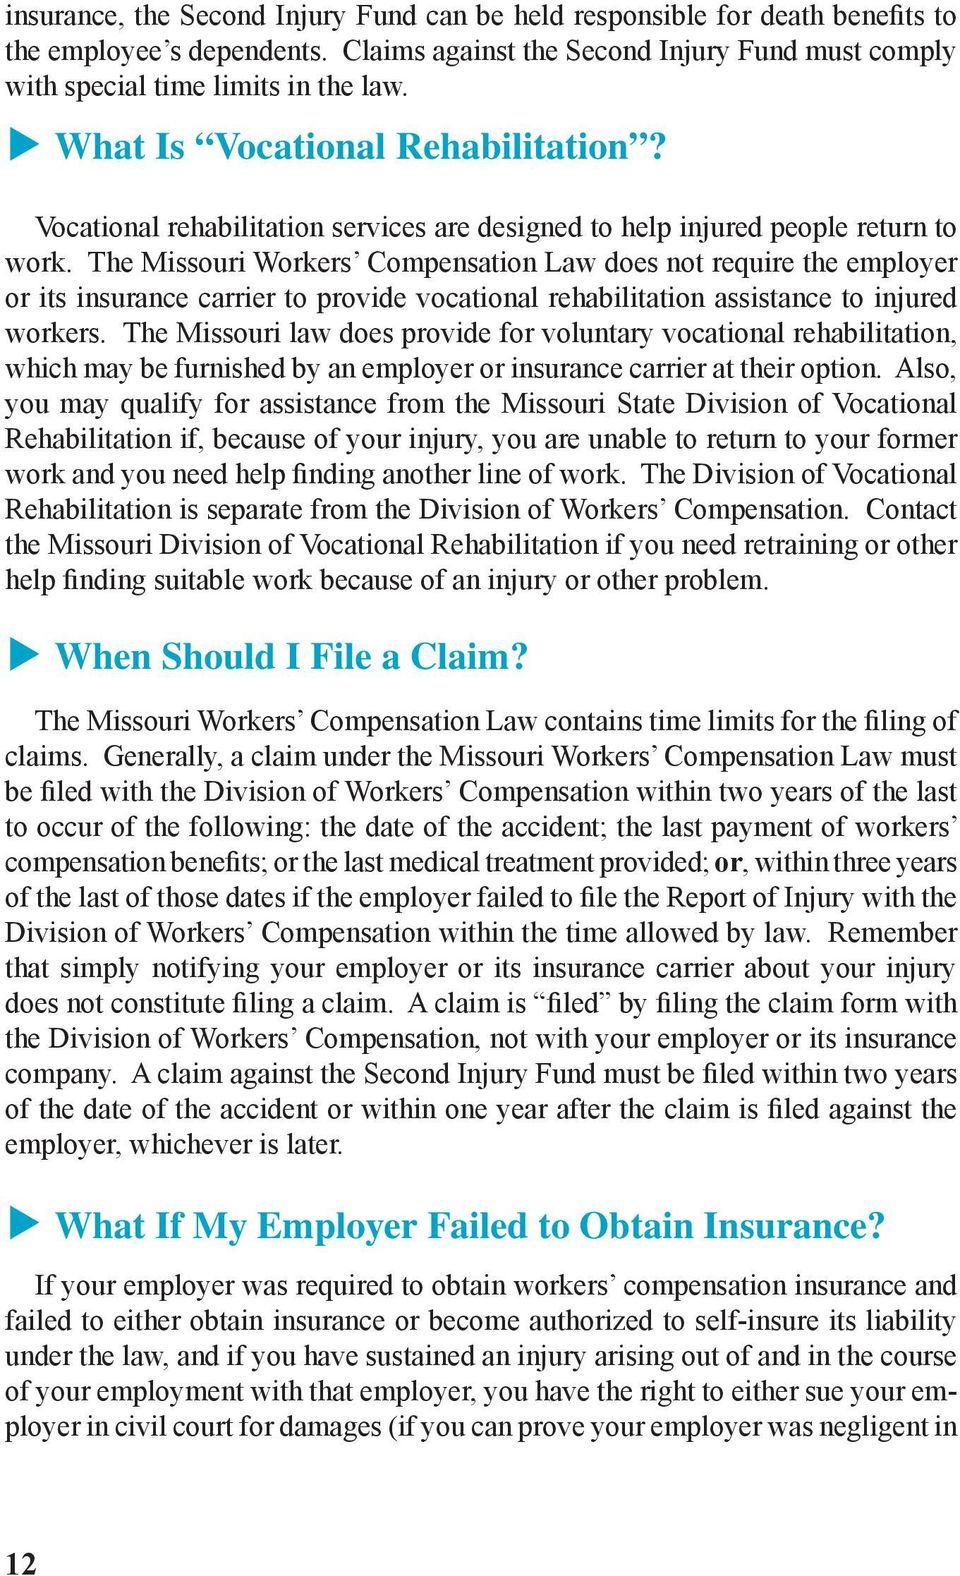 The Missouri Workers Compensation Law does not require the employer or its insurance carrier to provide vocational rehabilitation assistance to injured workers.